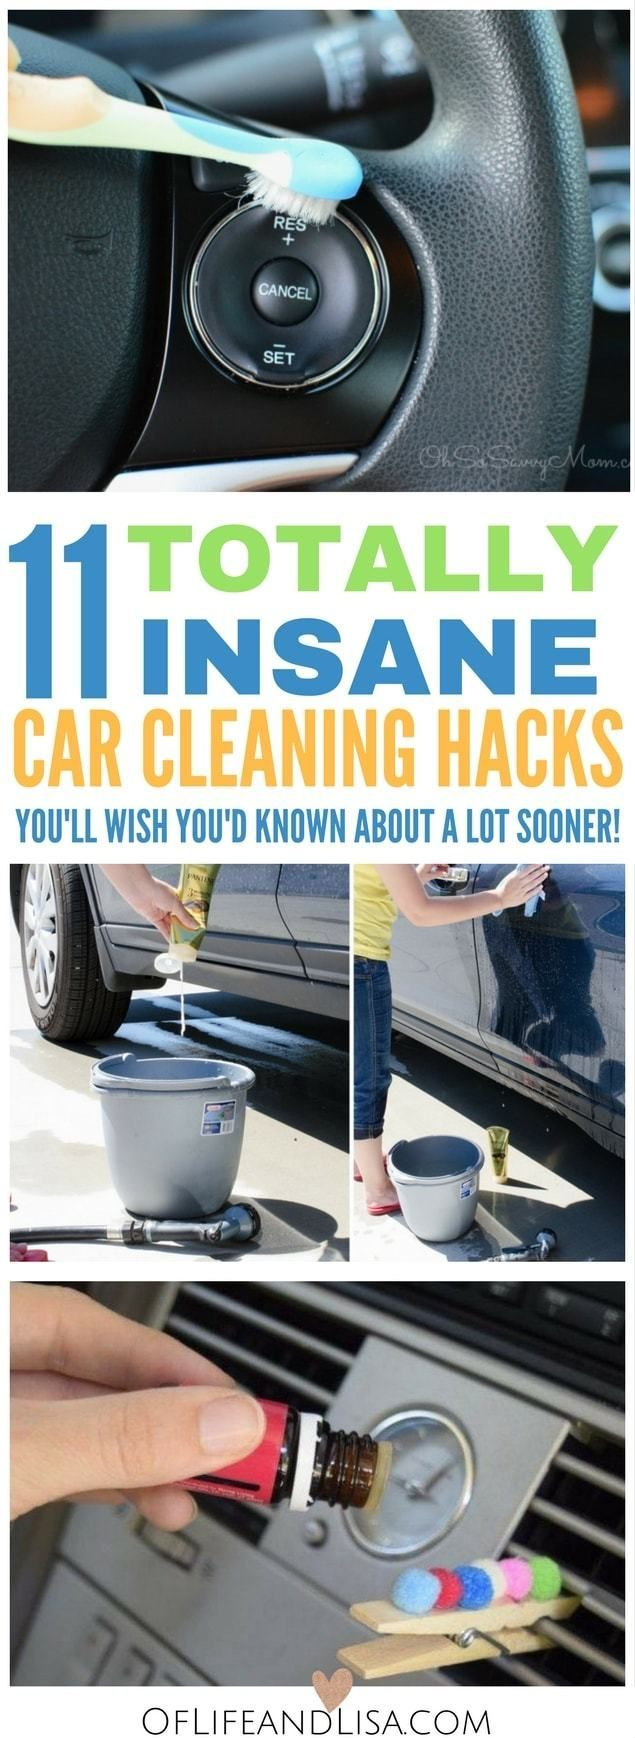 11 Car Cleaning and Detailing Hacks to Try at Home